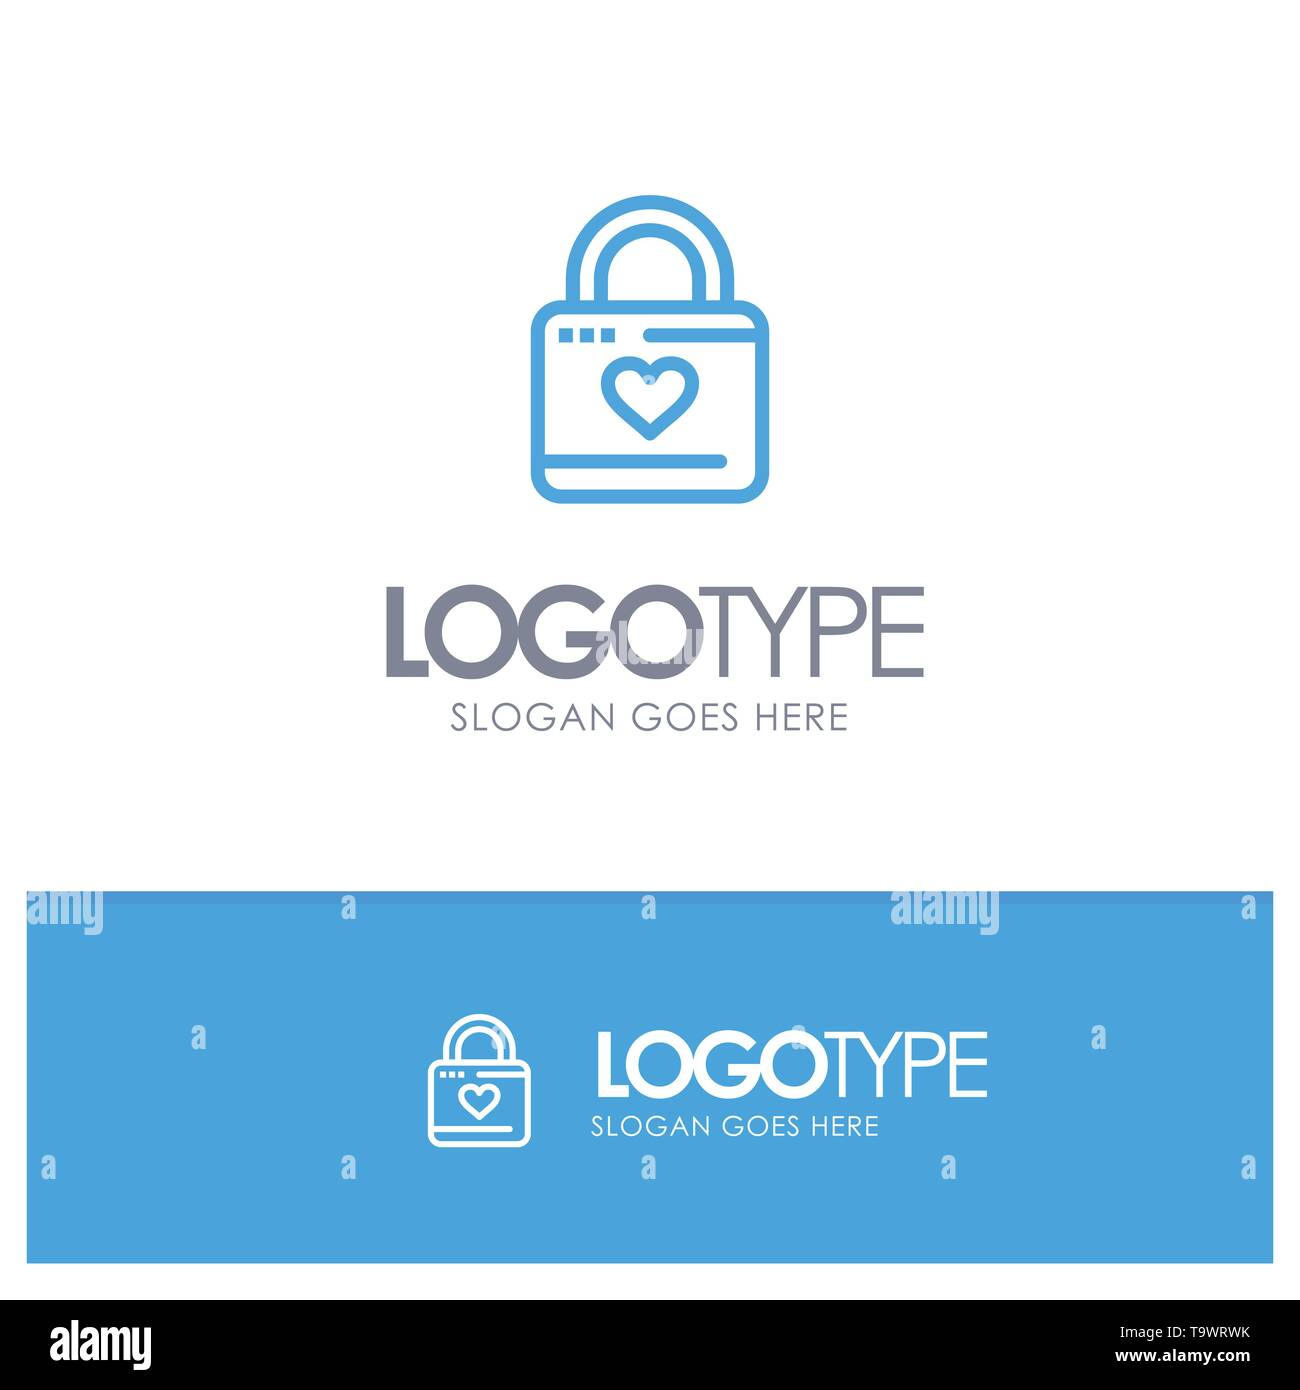 Lock, Locker, Heart, Heart Hacker, Heart Lock Blue Outline Logo Place for Tagline - Stock Image